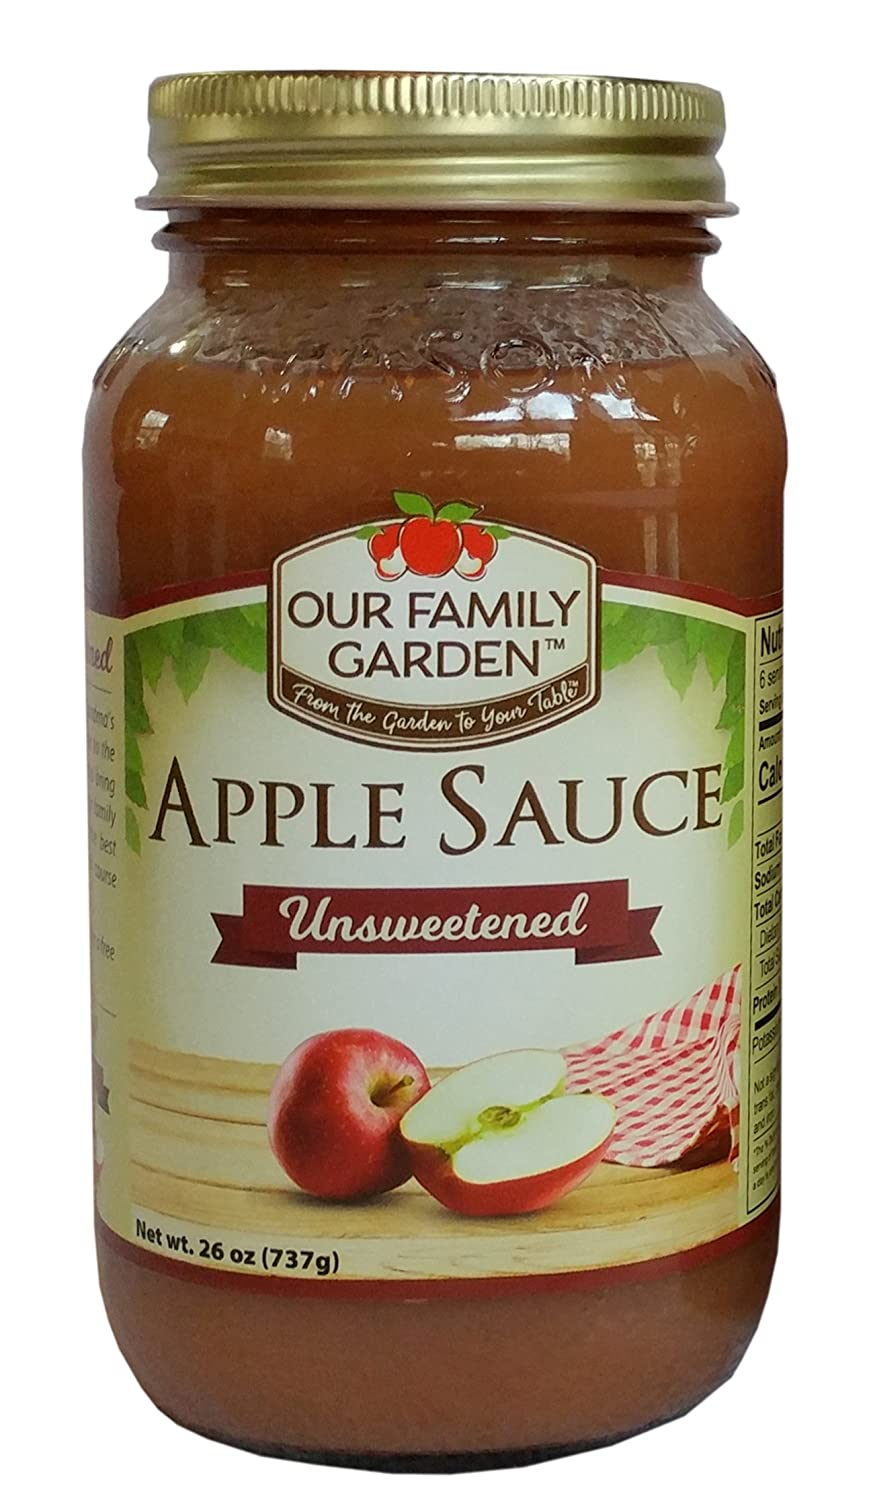 Our Family Garden Applesauce (Unsweetened)